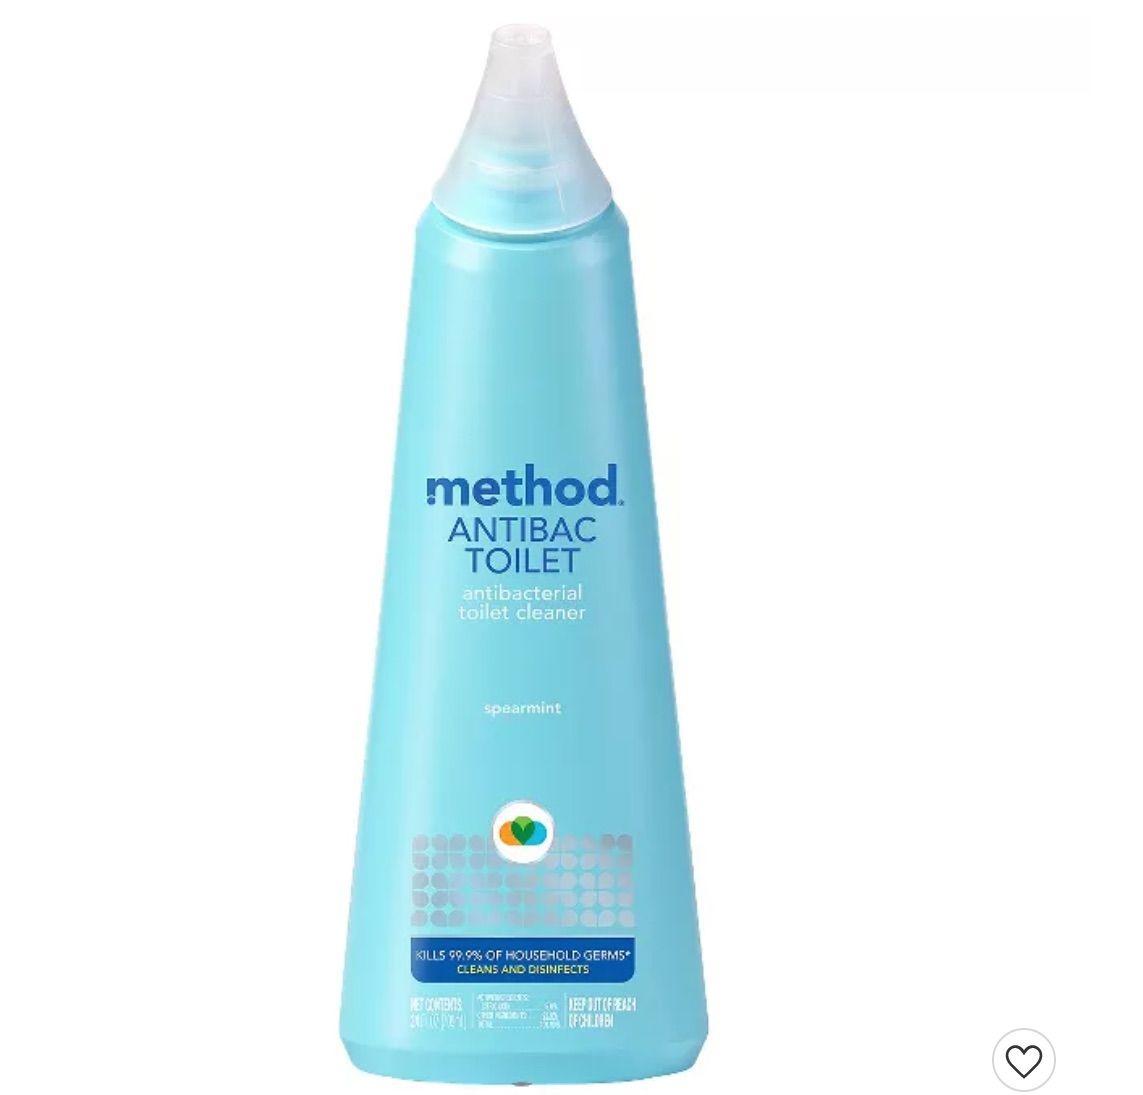  Method Cleaning Products Antibacterial Toilet Bowl Cleaner Spearmint